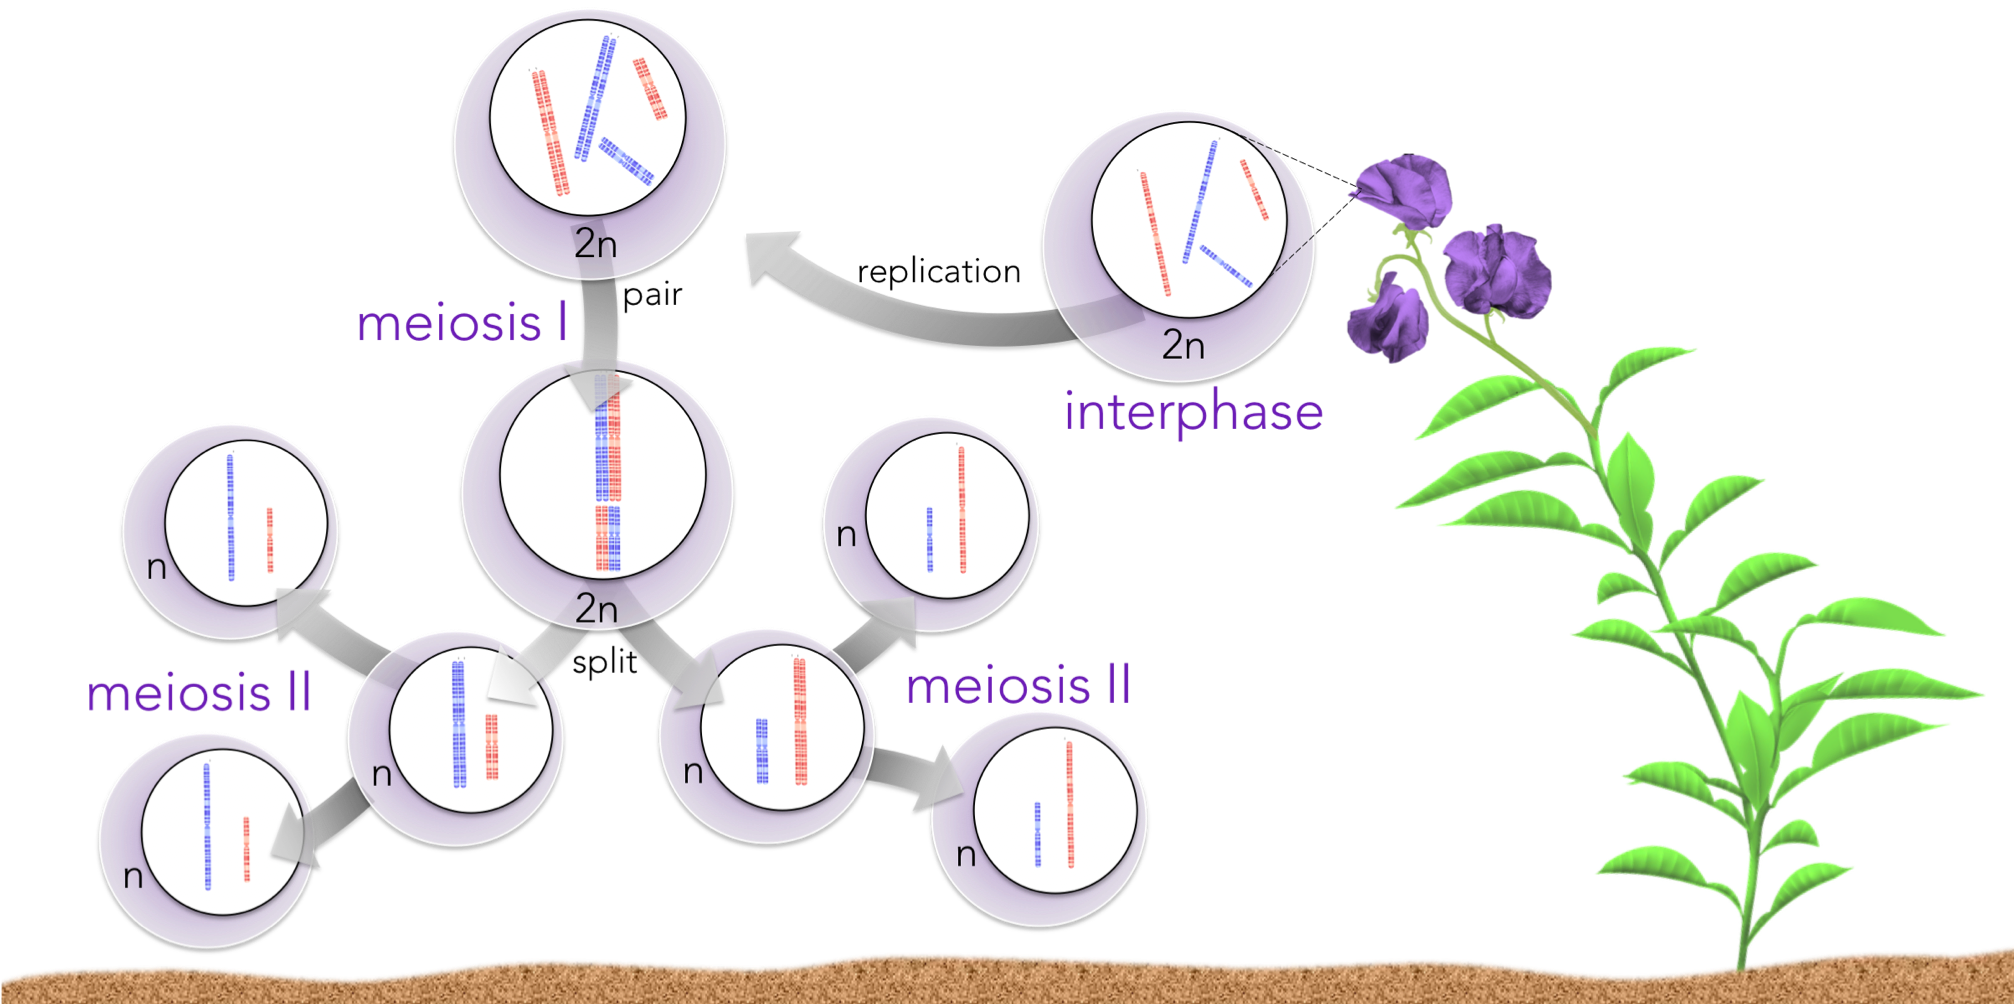 Figure 4 .  Meiosis explains the principle of segregation . Each gamete resultant from meiosis has an equal probability of acquiring one or another homologous chromosome, for each homologous chromosome pair.